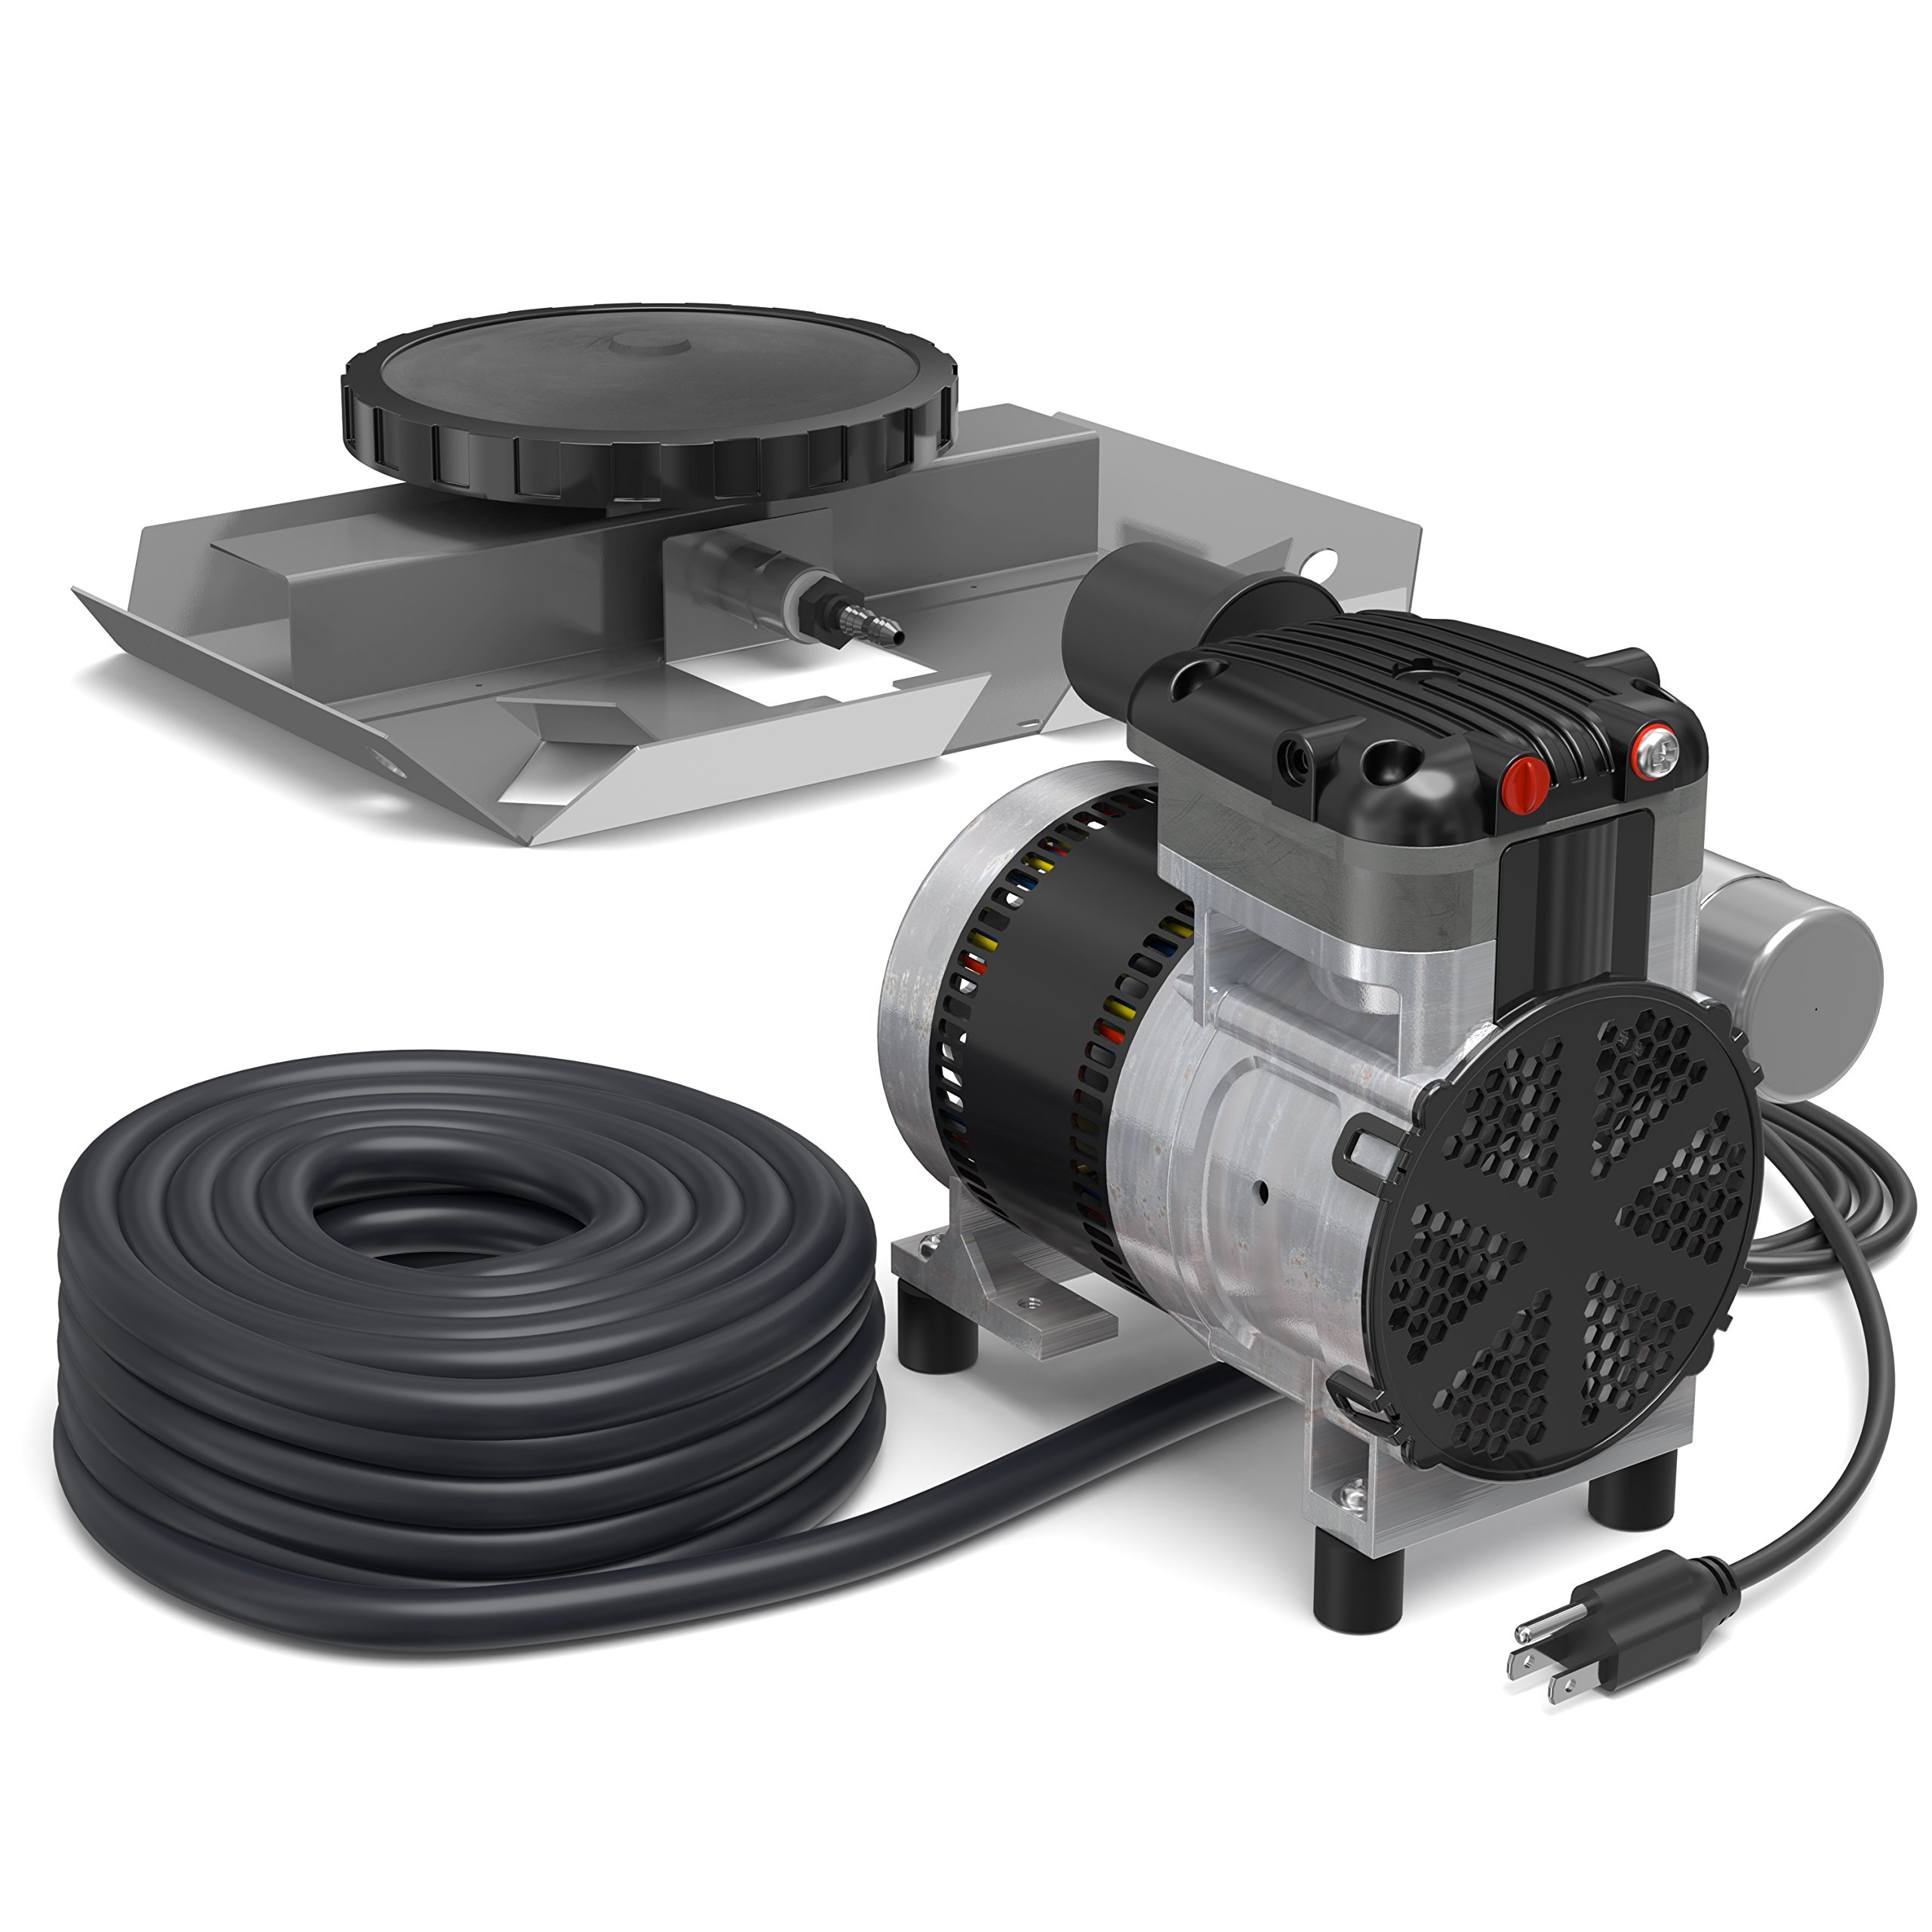 AirPro Pond Aerator Kit by Living Water - Rocking Piston Pond Aeration System for Up to 1 Acre - Minimize Odor, Prevent Fish Kill - Includes 1/4 HP Compressor, 100' Weighted Tubing, Membrane Diffuser by Air Pro